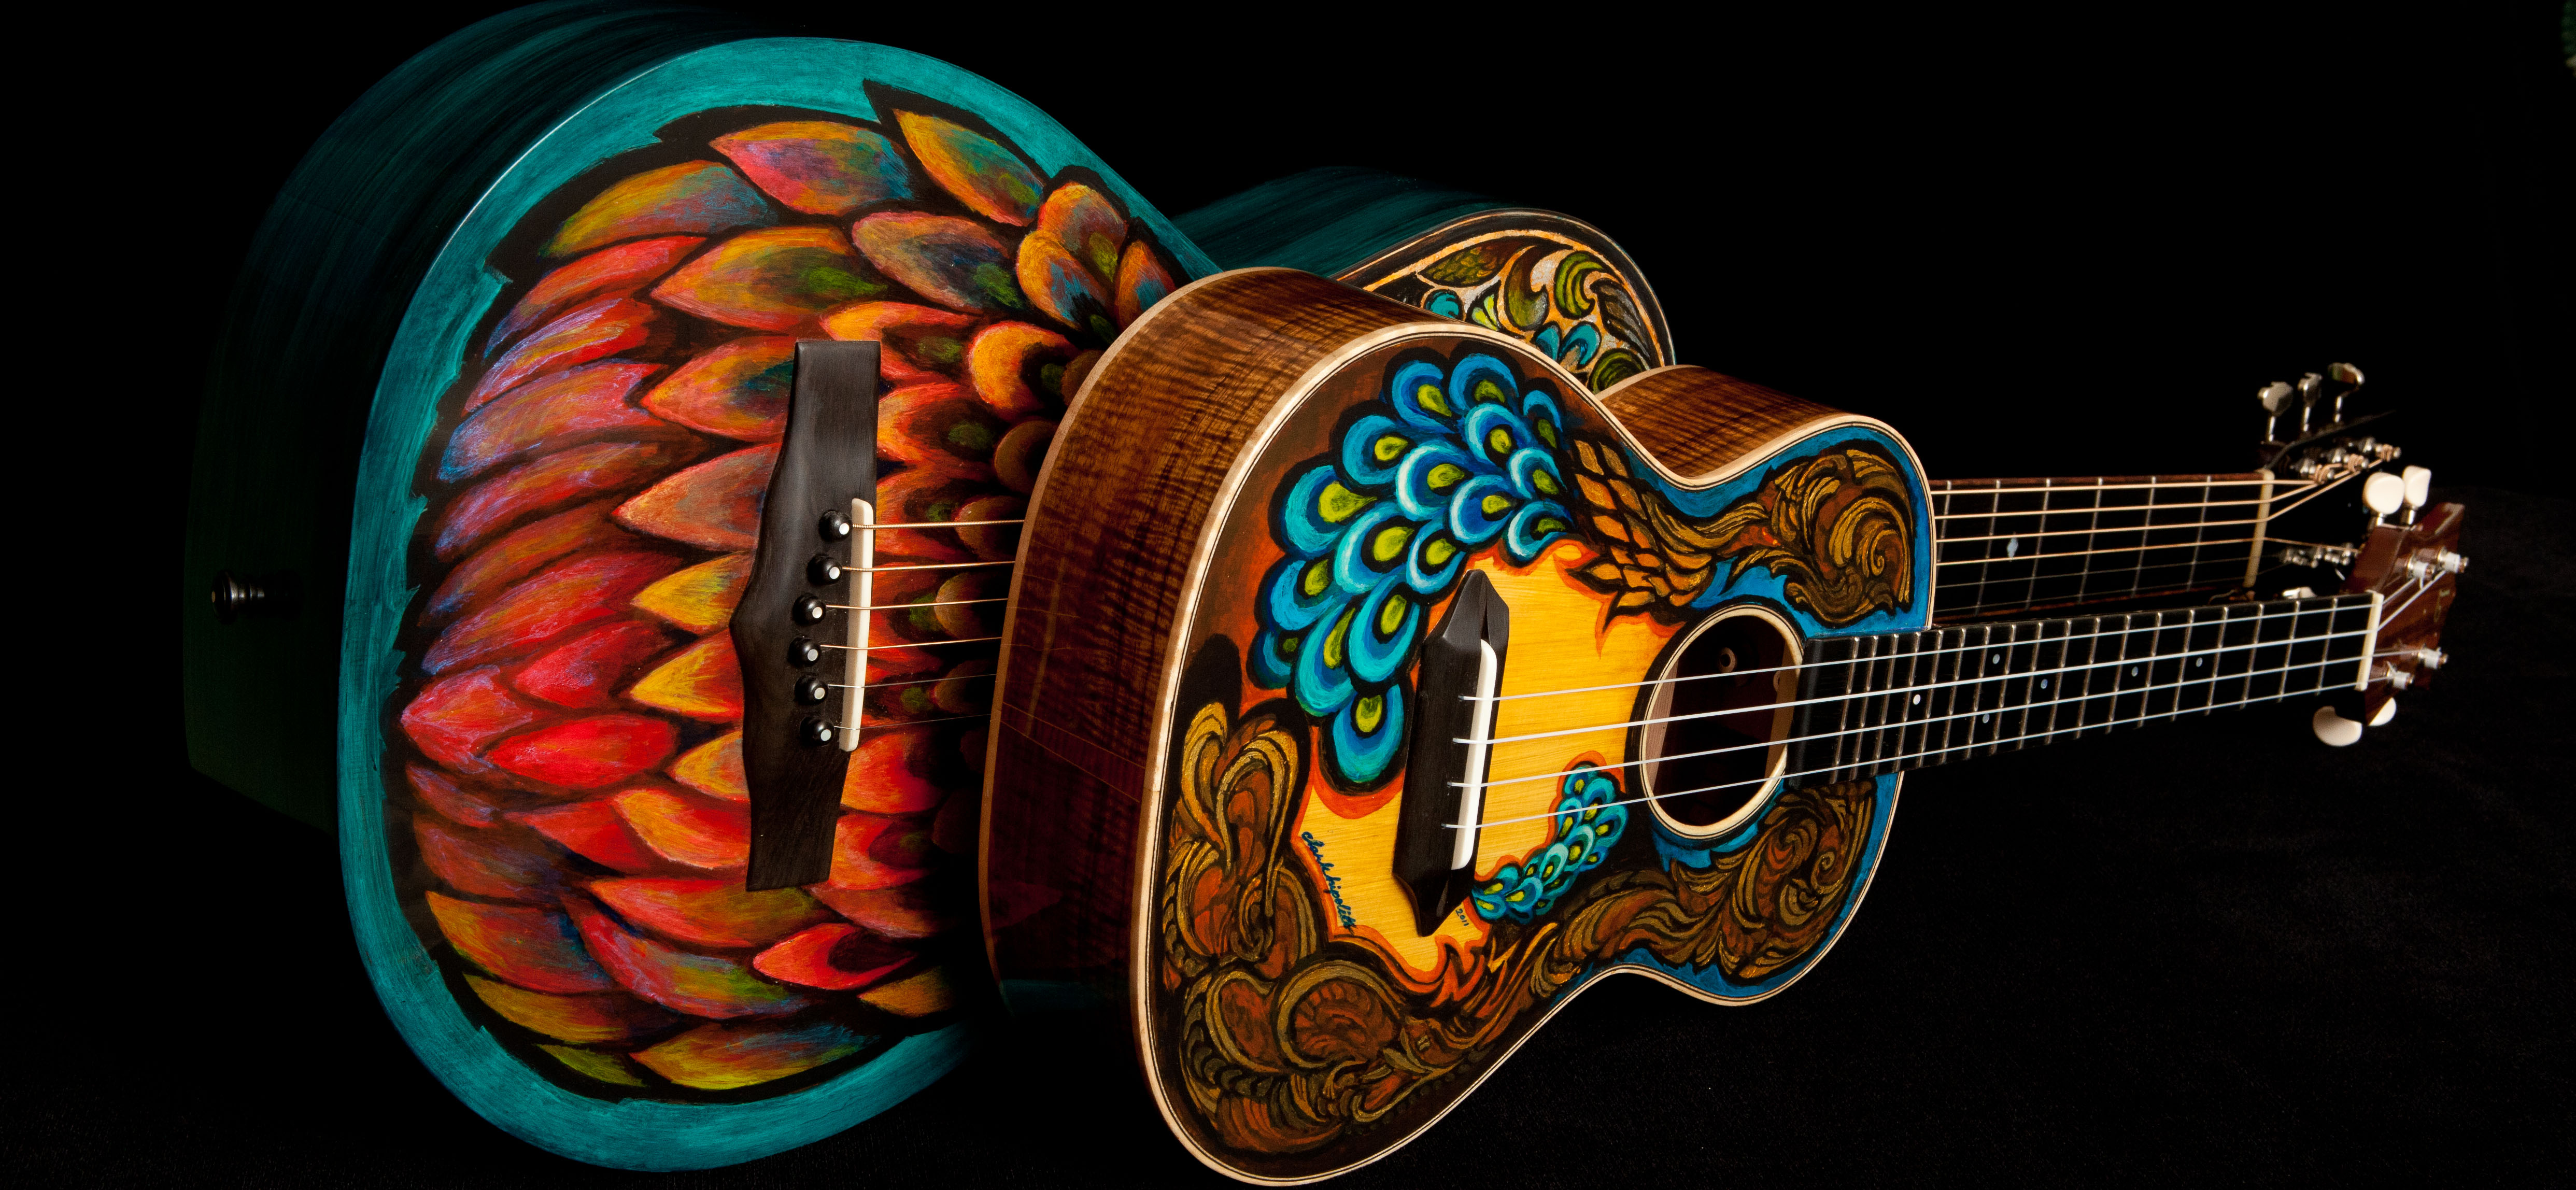 Handcrafted Lichty Guitars, artwork by Clark Hipolito